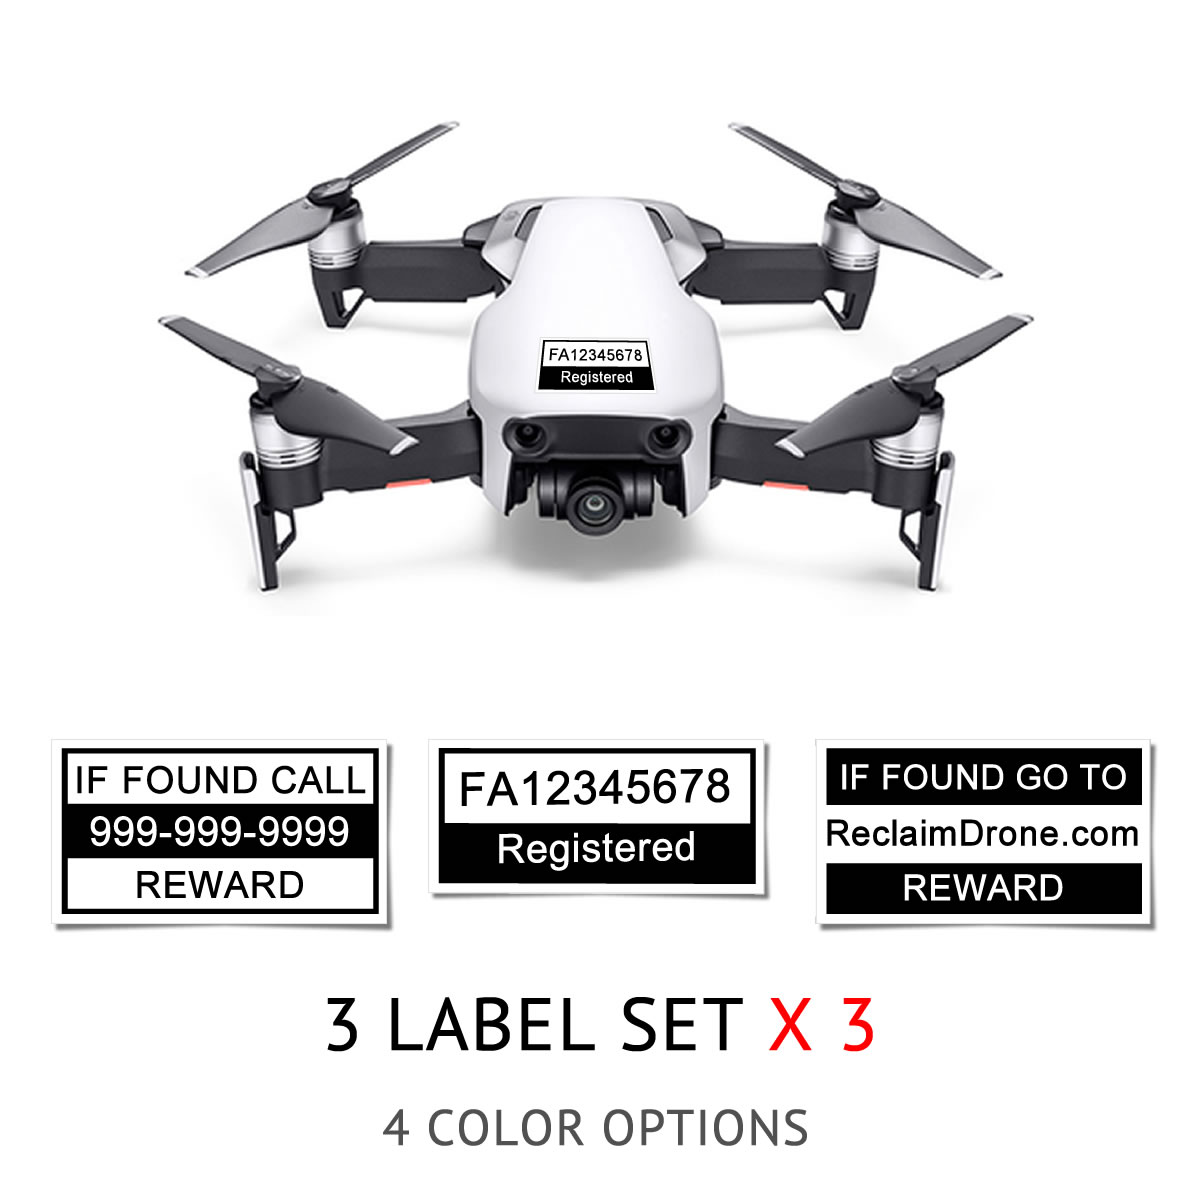 DJI Mavic Air FAA Registration Number And Phone Labels